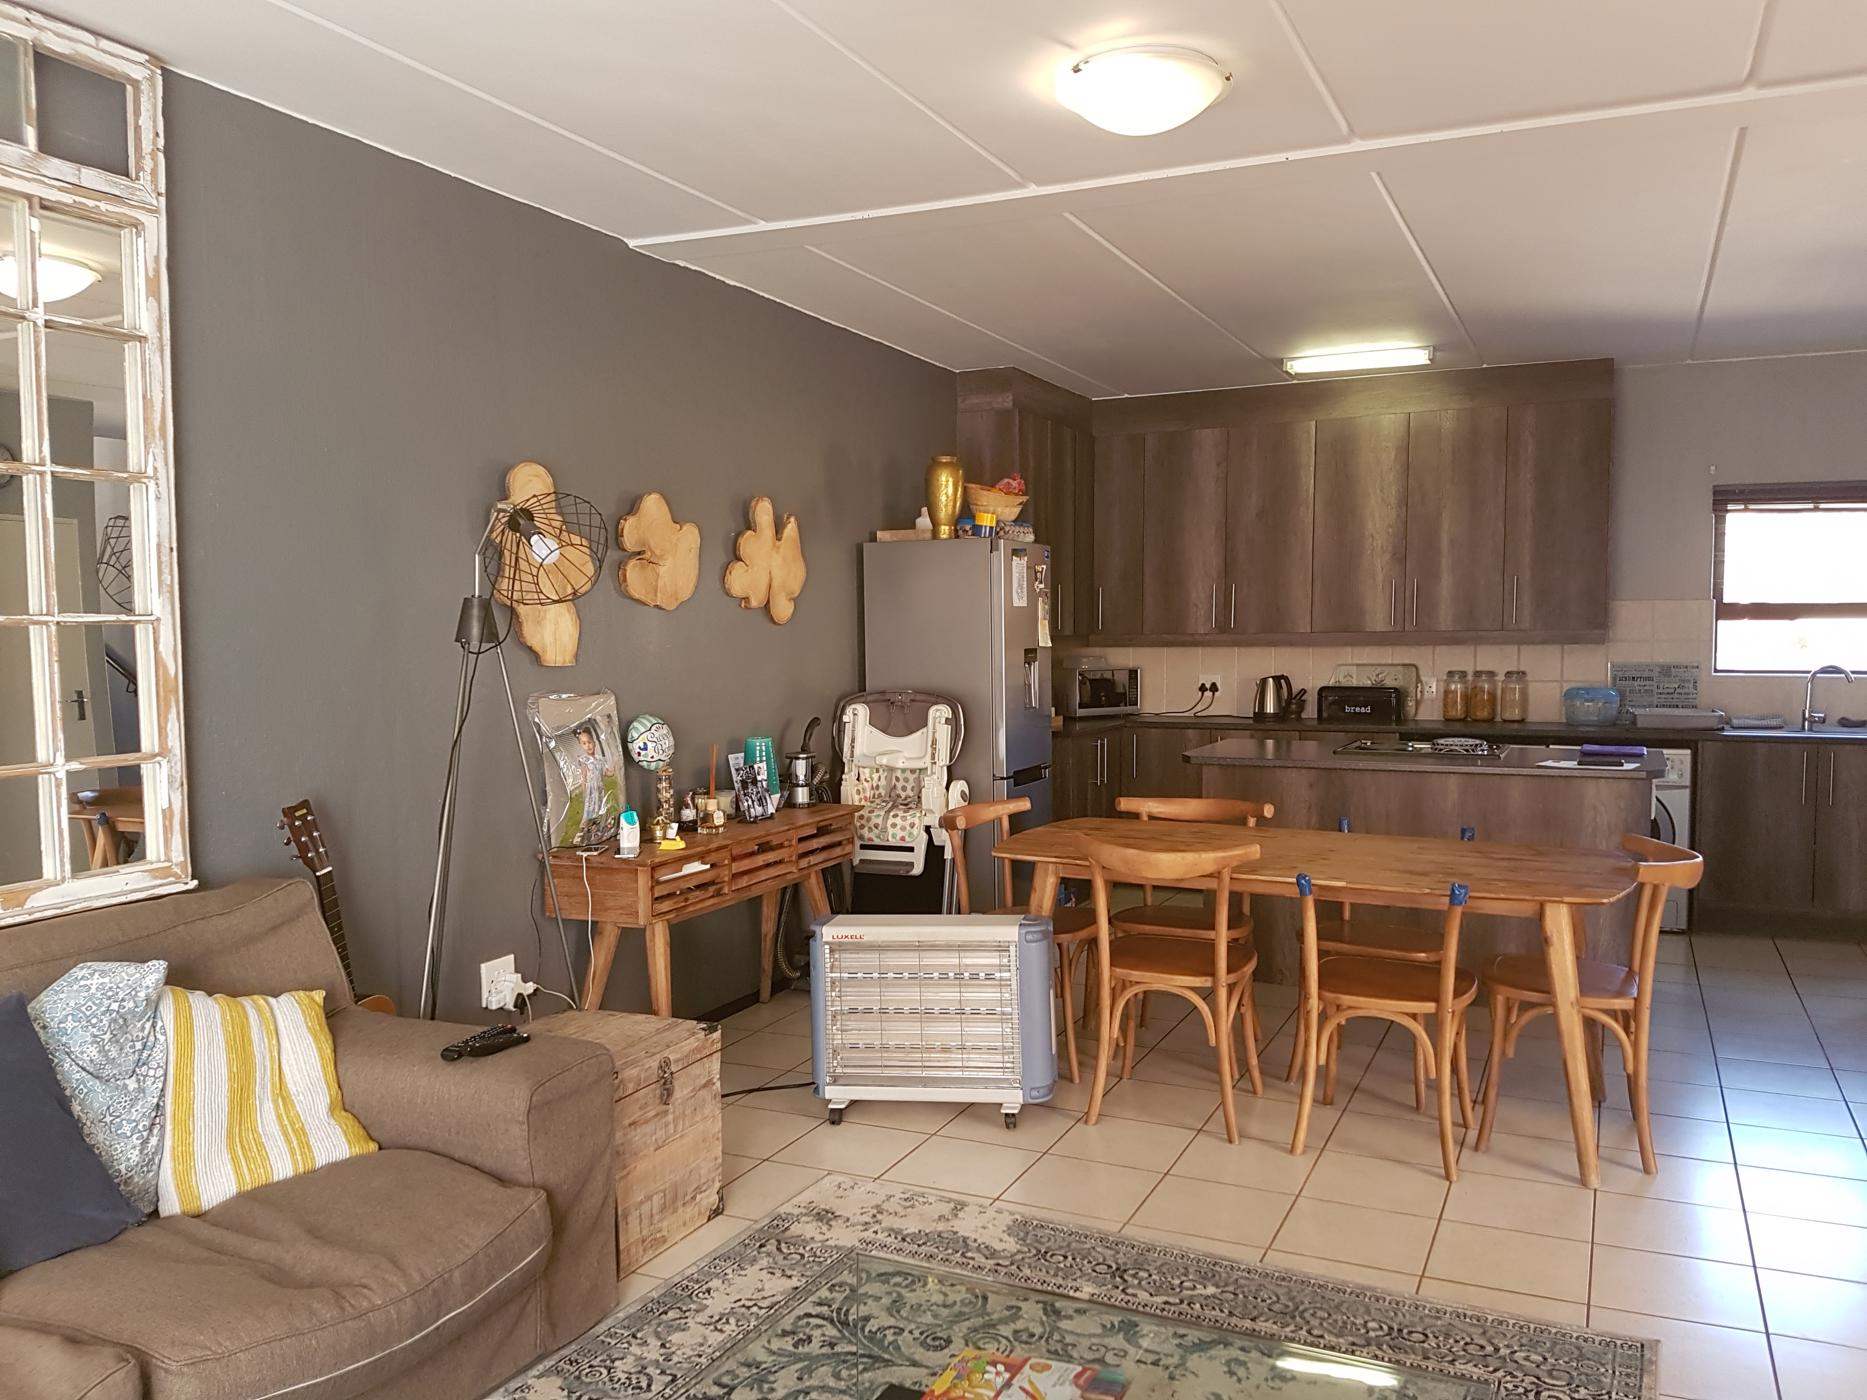 https://listing.pamgolding.co.za/images/properties/201907/1078457/H/1078457_H_1.jpg